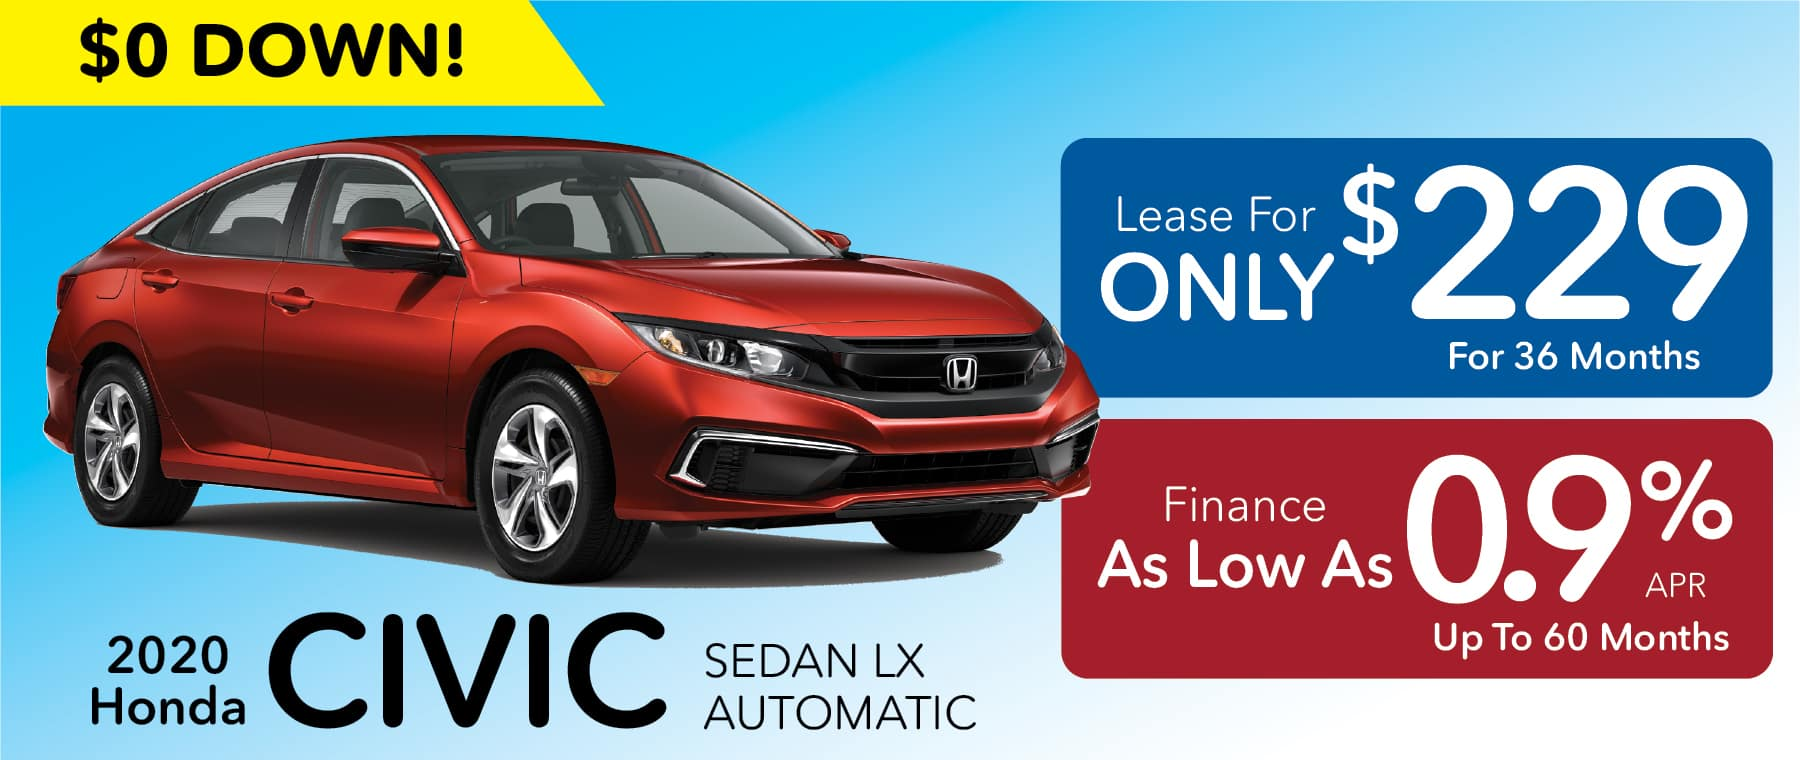 2020 Civic Lease for $229 month for 36 Months